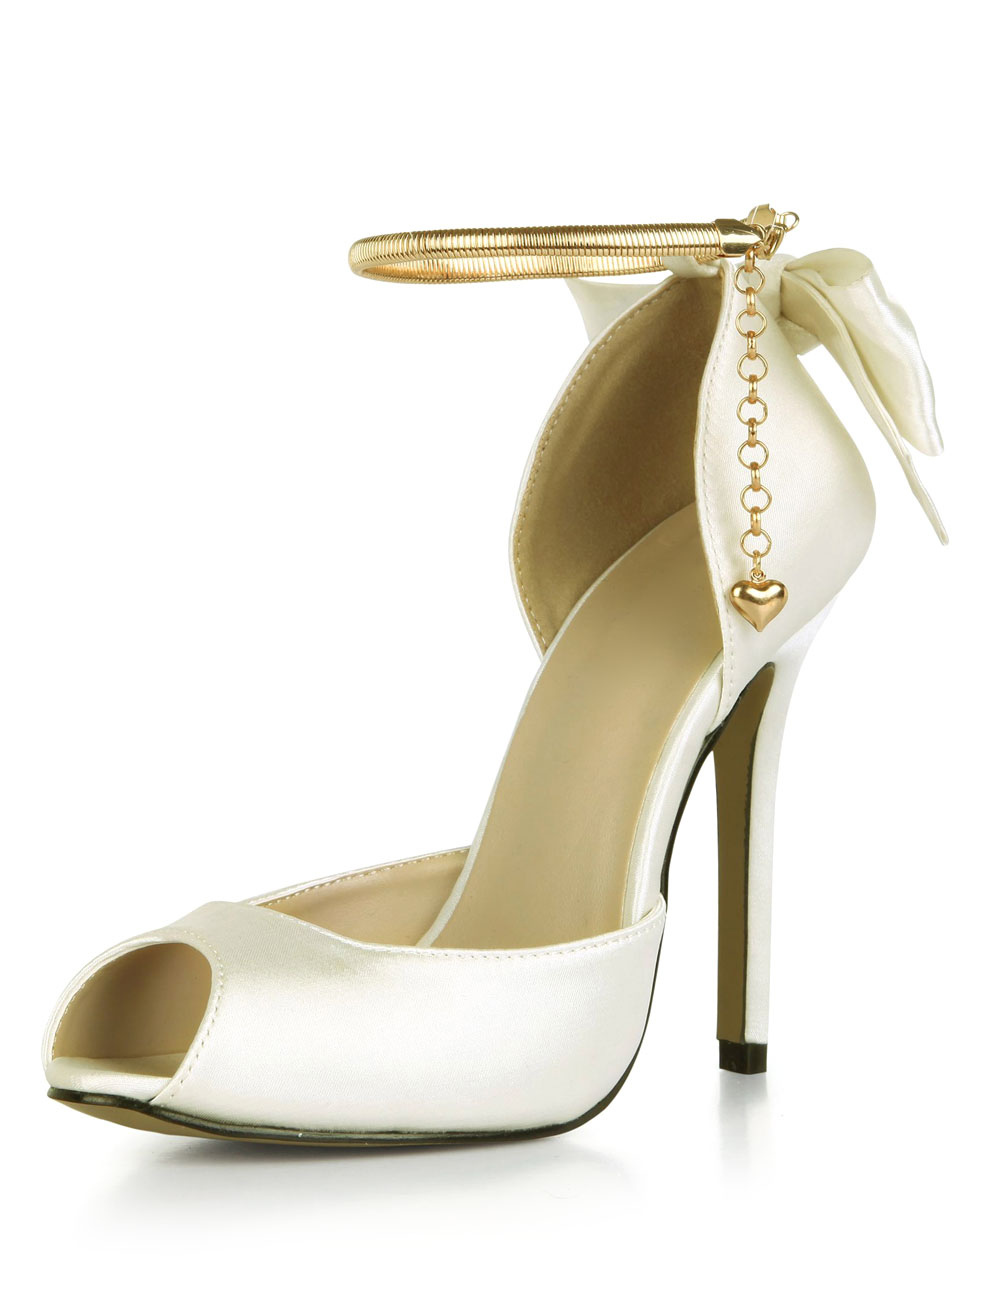 Buy Ivory Wedding Shoes Satin High Heel Peep Toe Bow Ankle Strap Bridal Pumps for $52.49 in Milanoo store